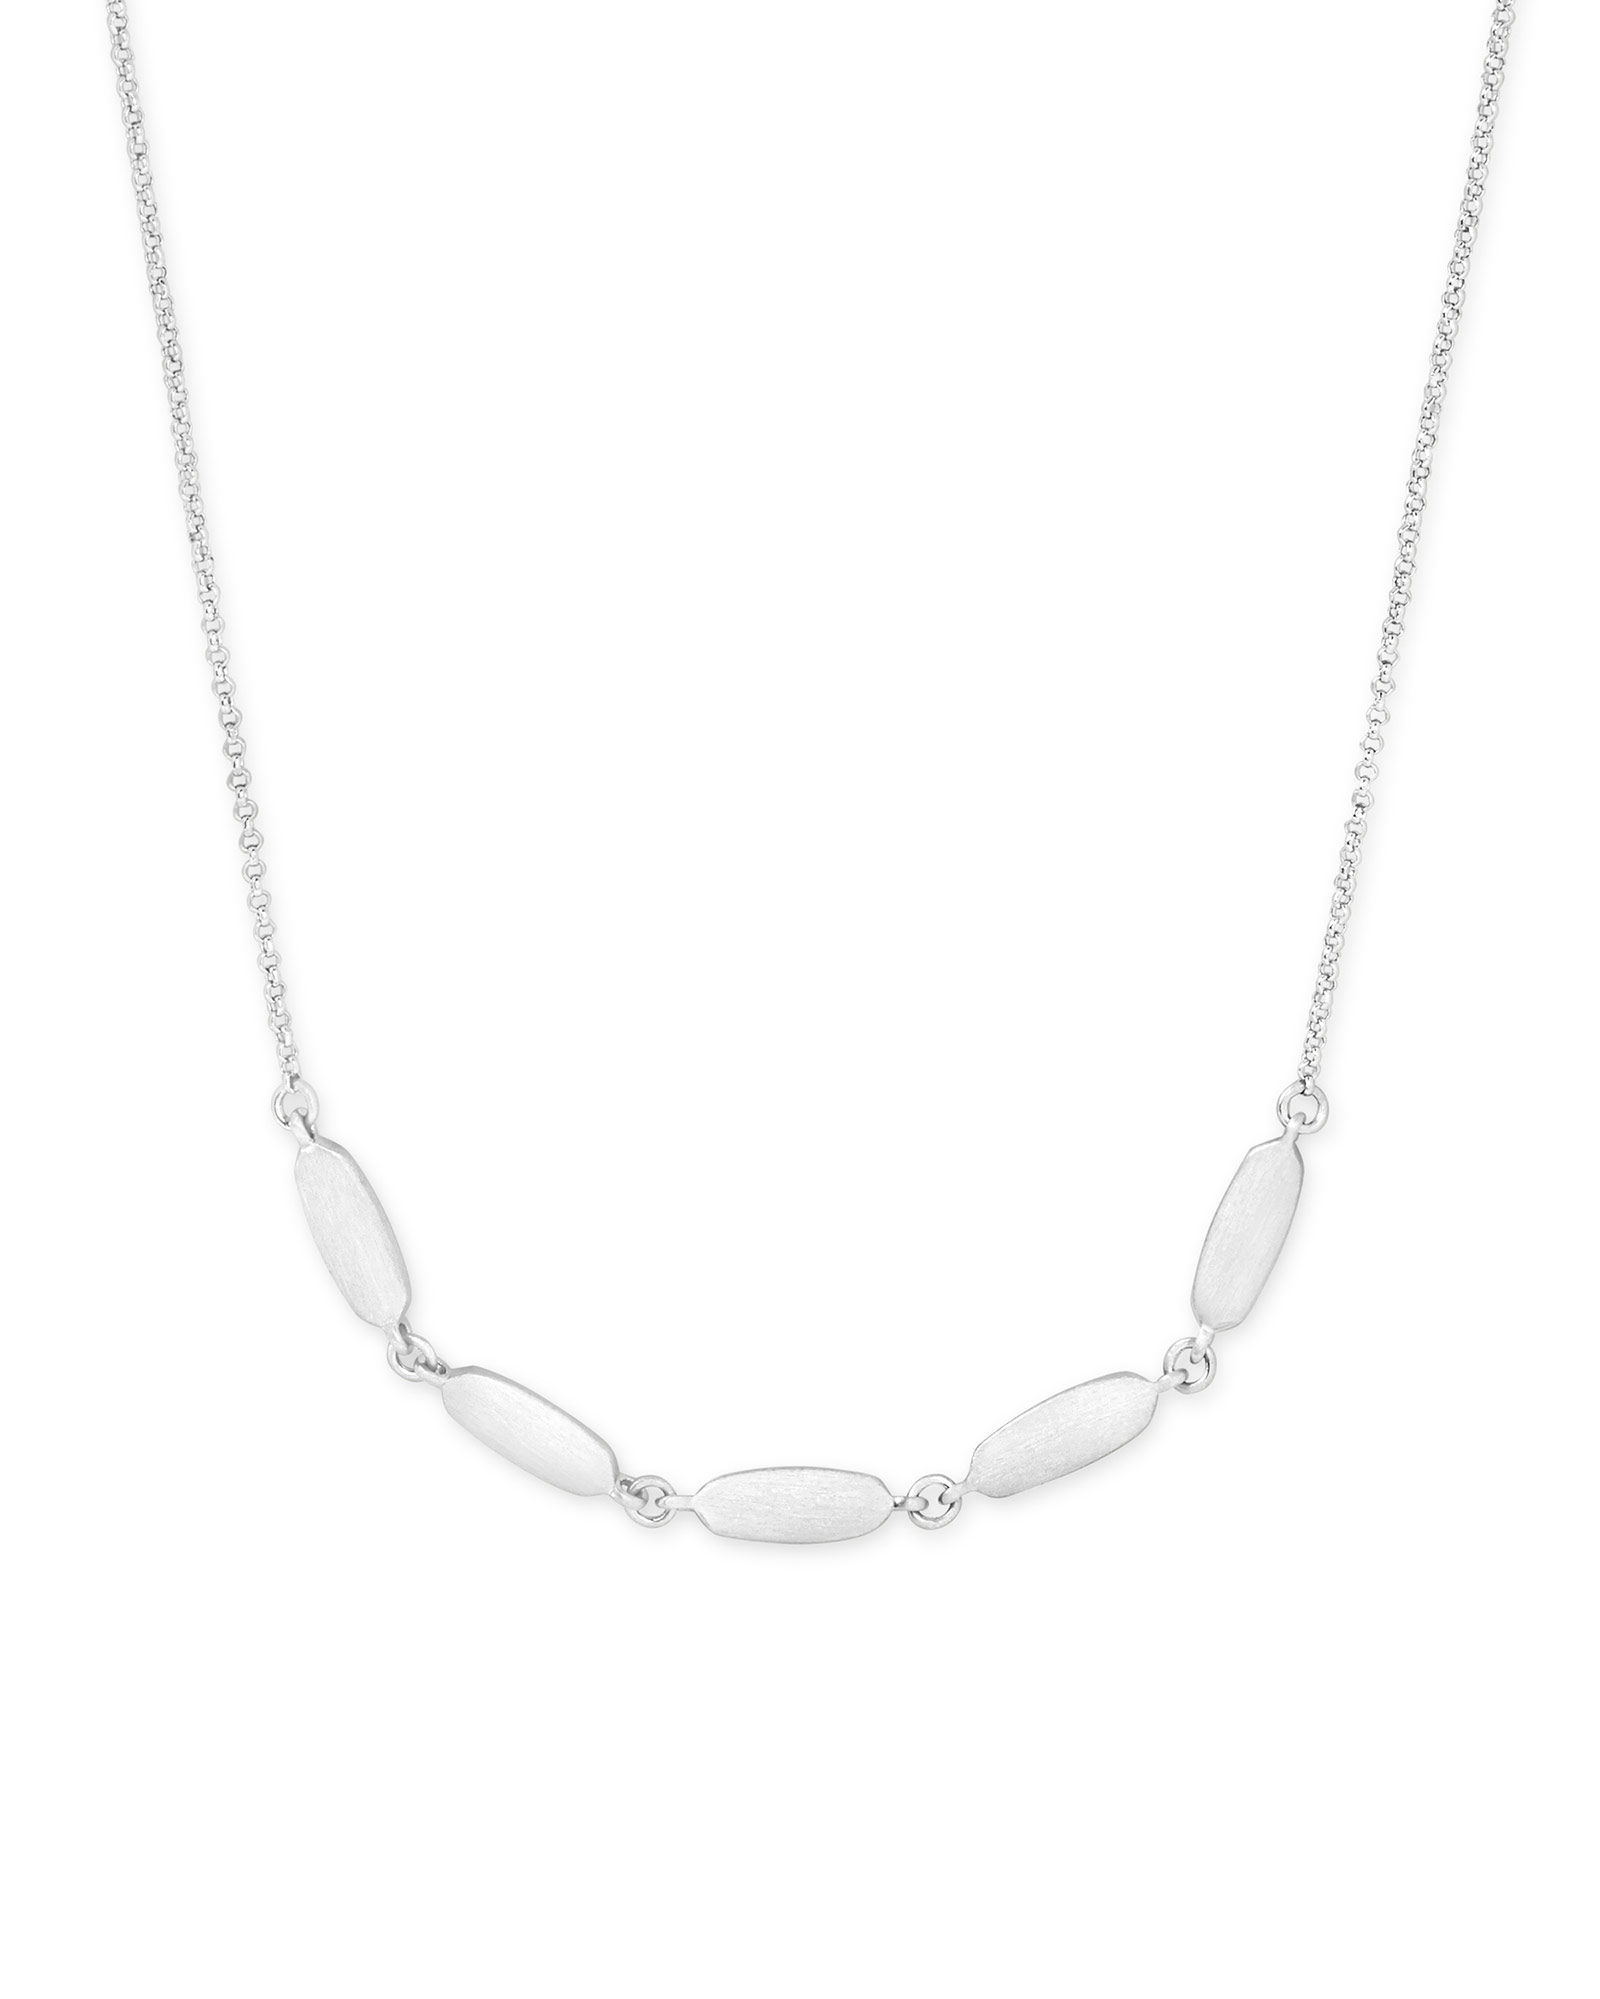 Fern Collar Necklace in Bright Silver